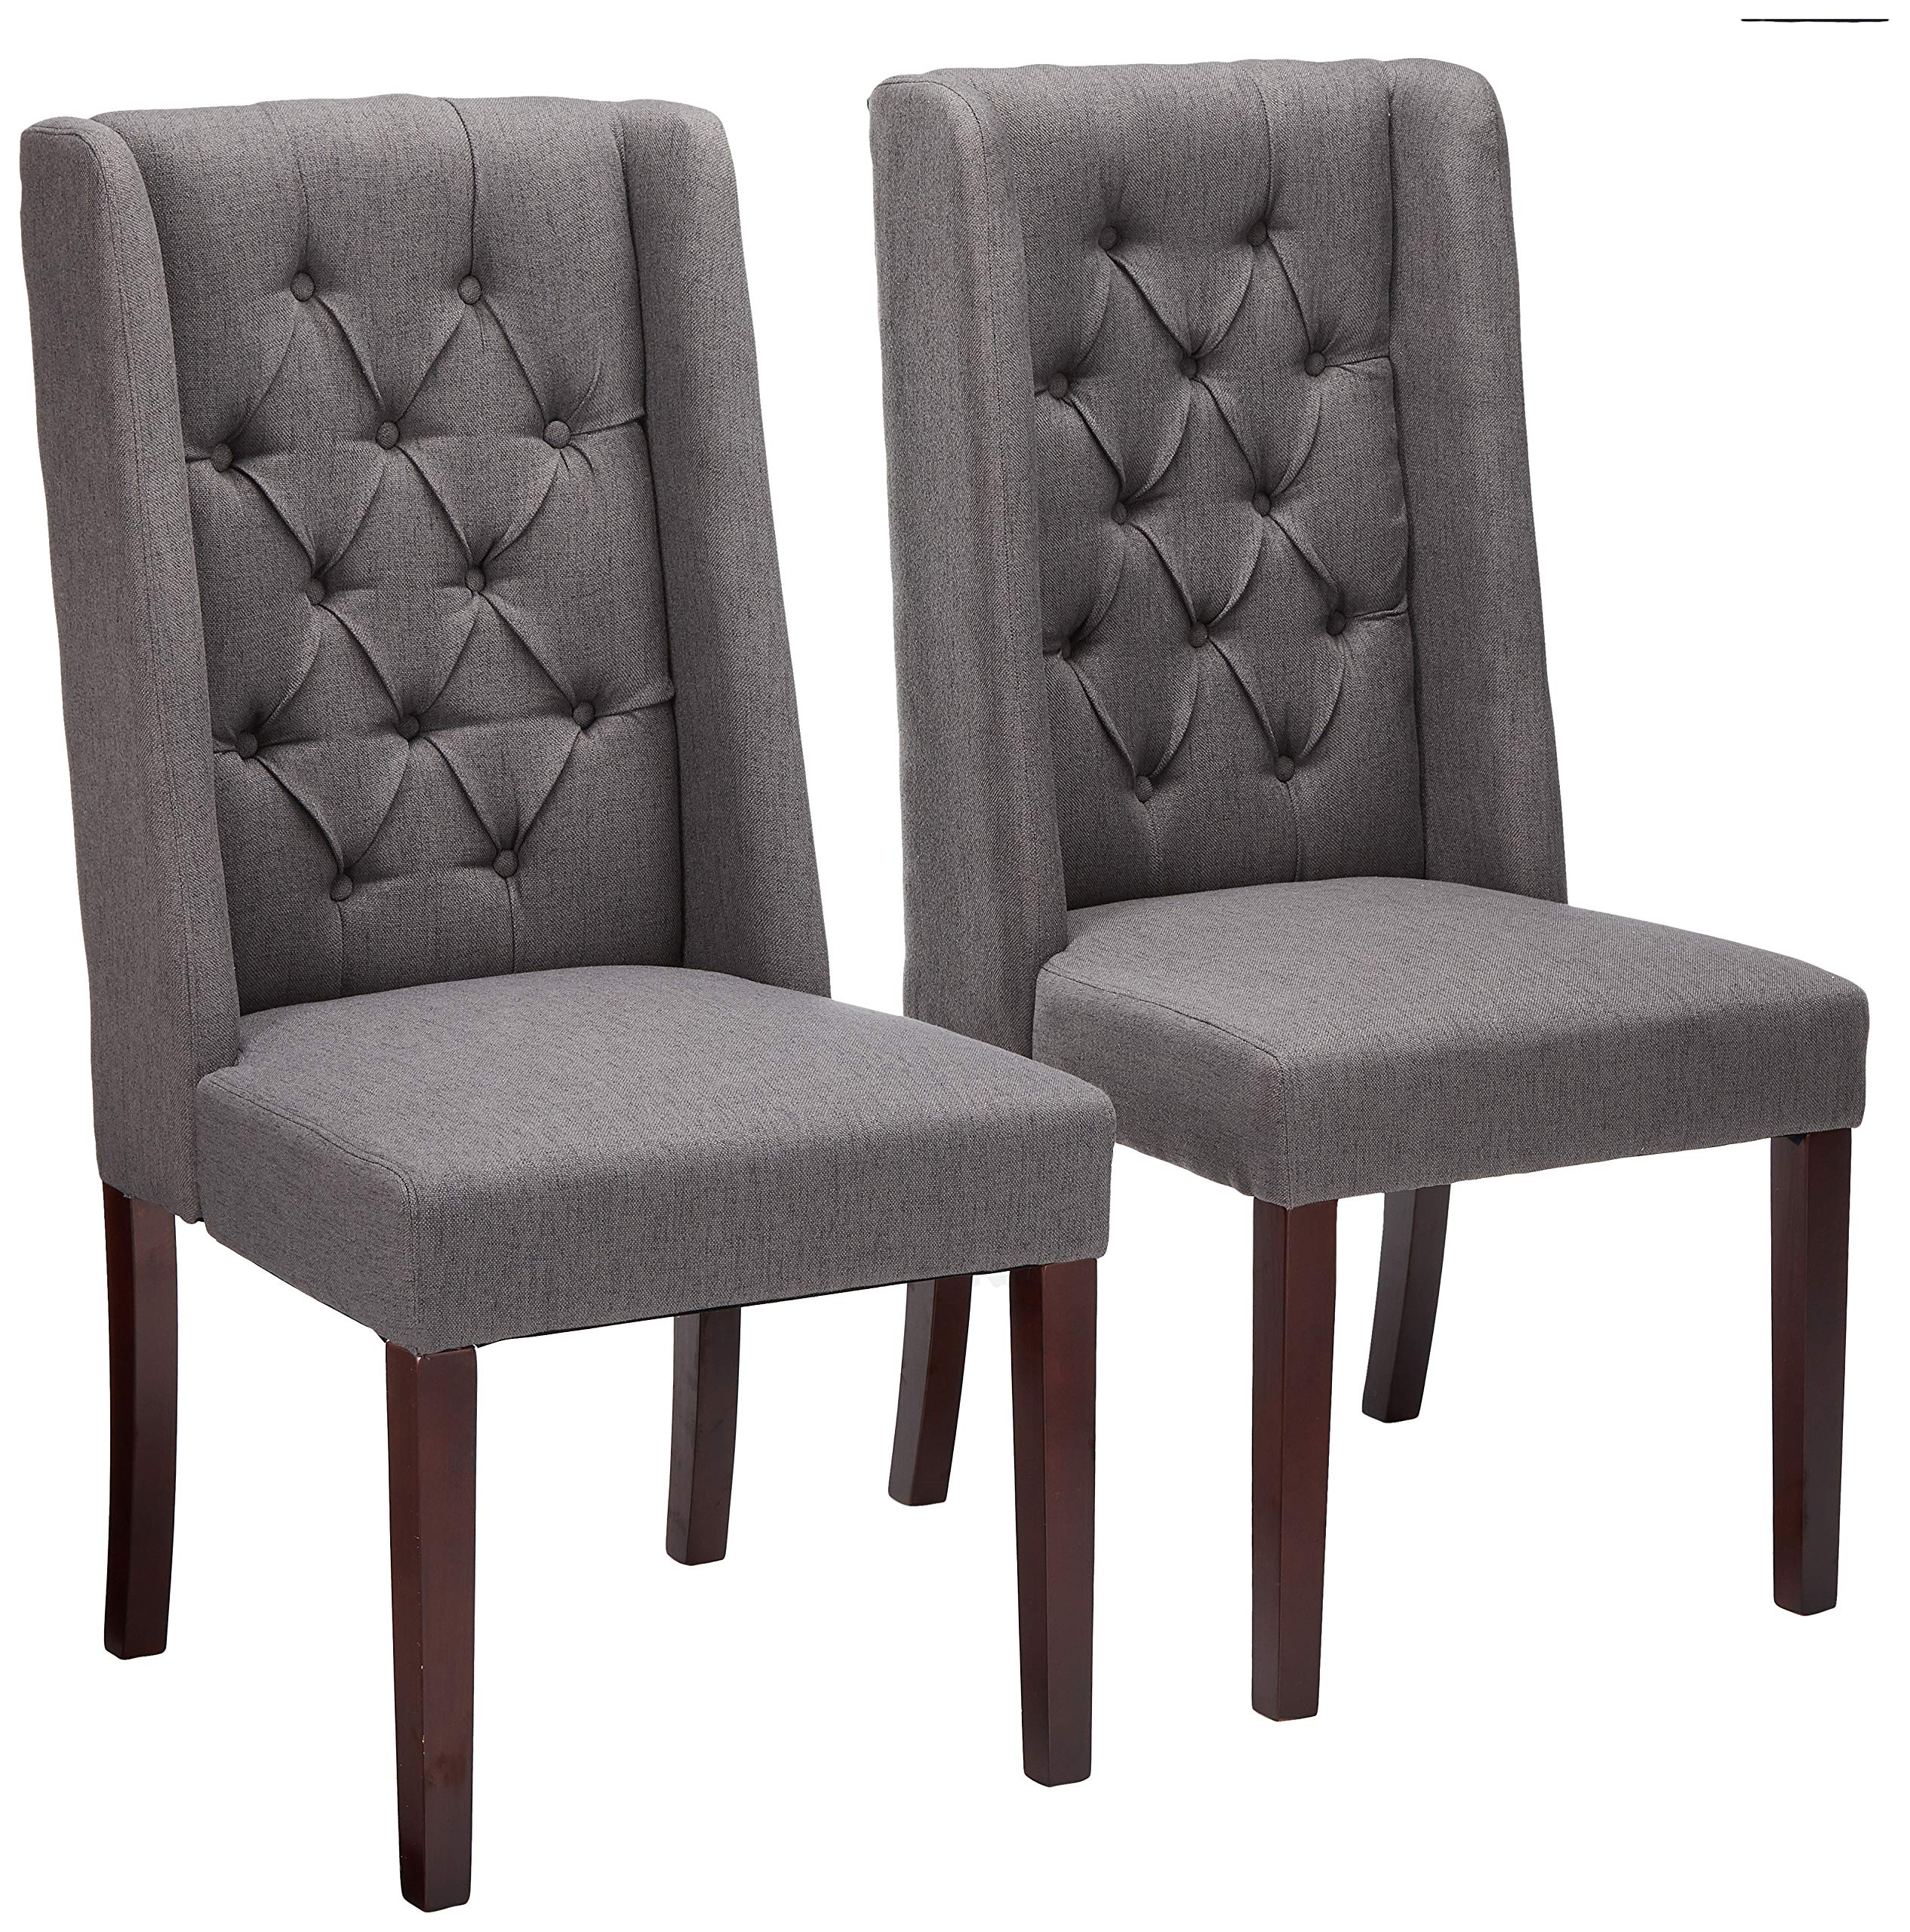 Christopher Knight Home 302439 Billings Tufted Dark Grey Fabric Dining Chairs (Set of 2) by Christopher Knight Home